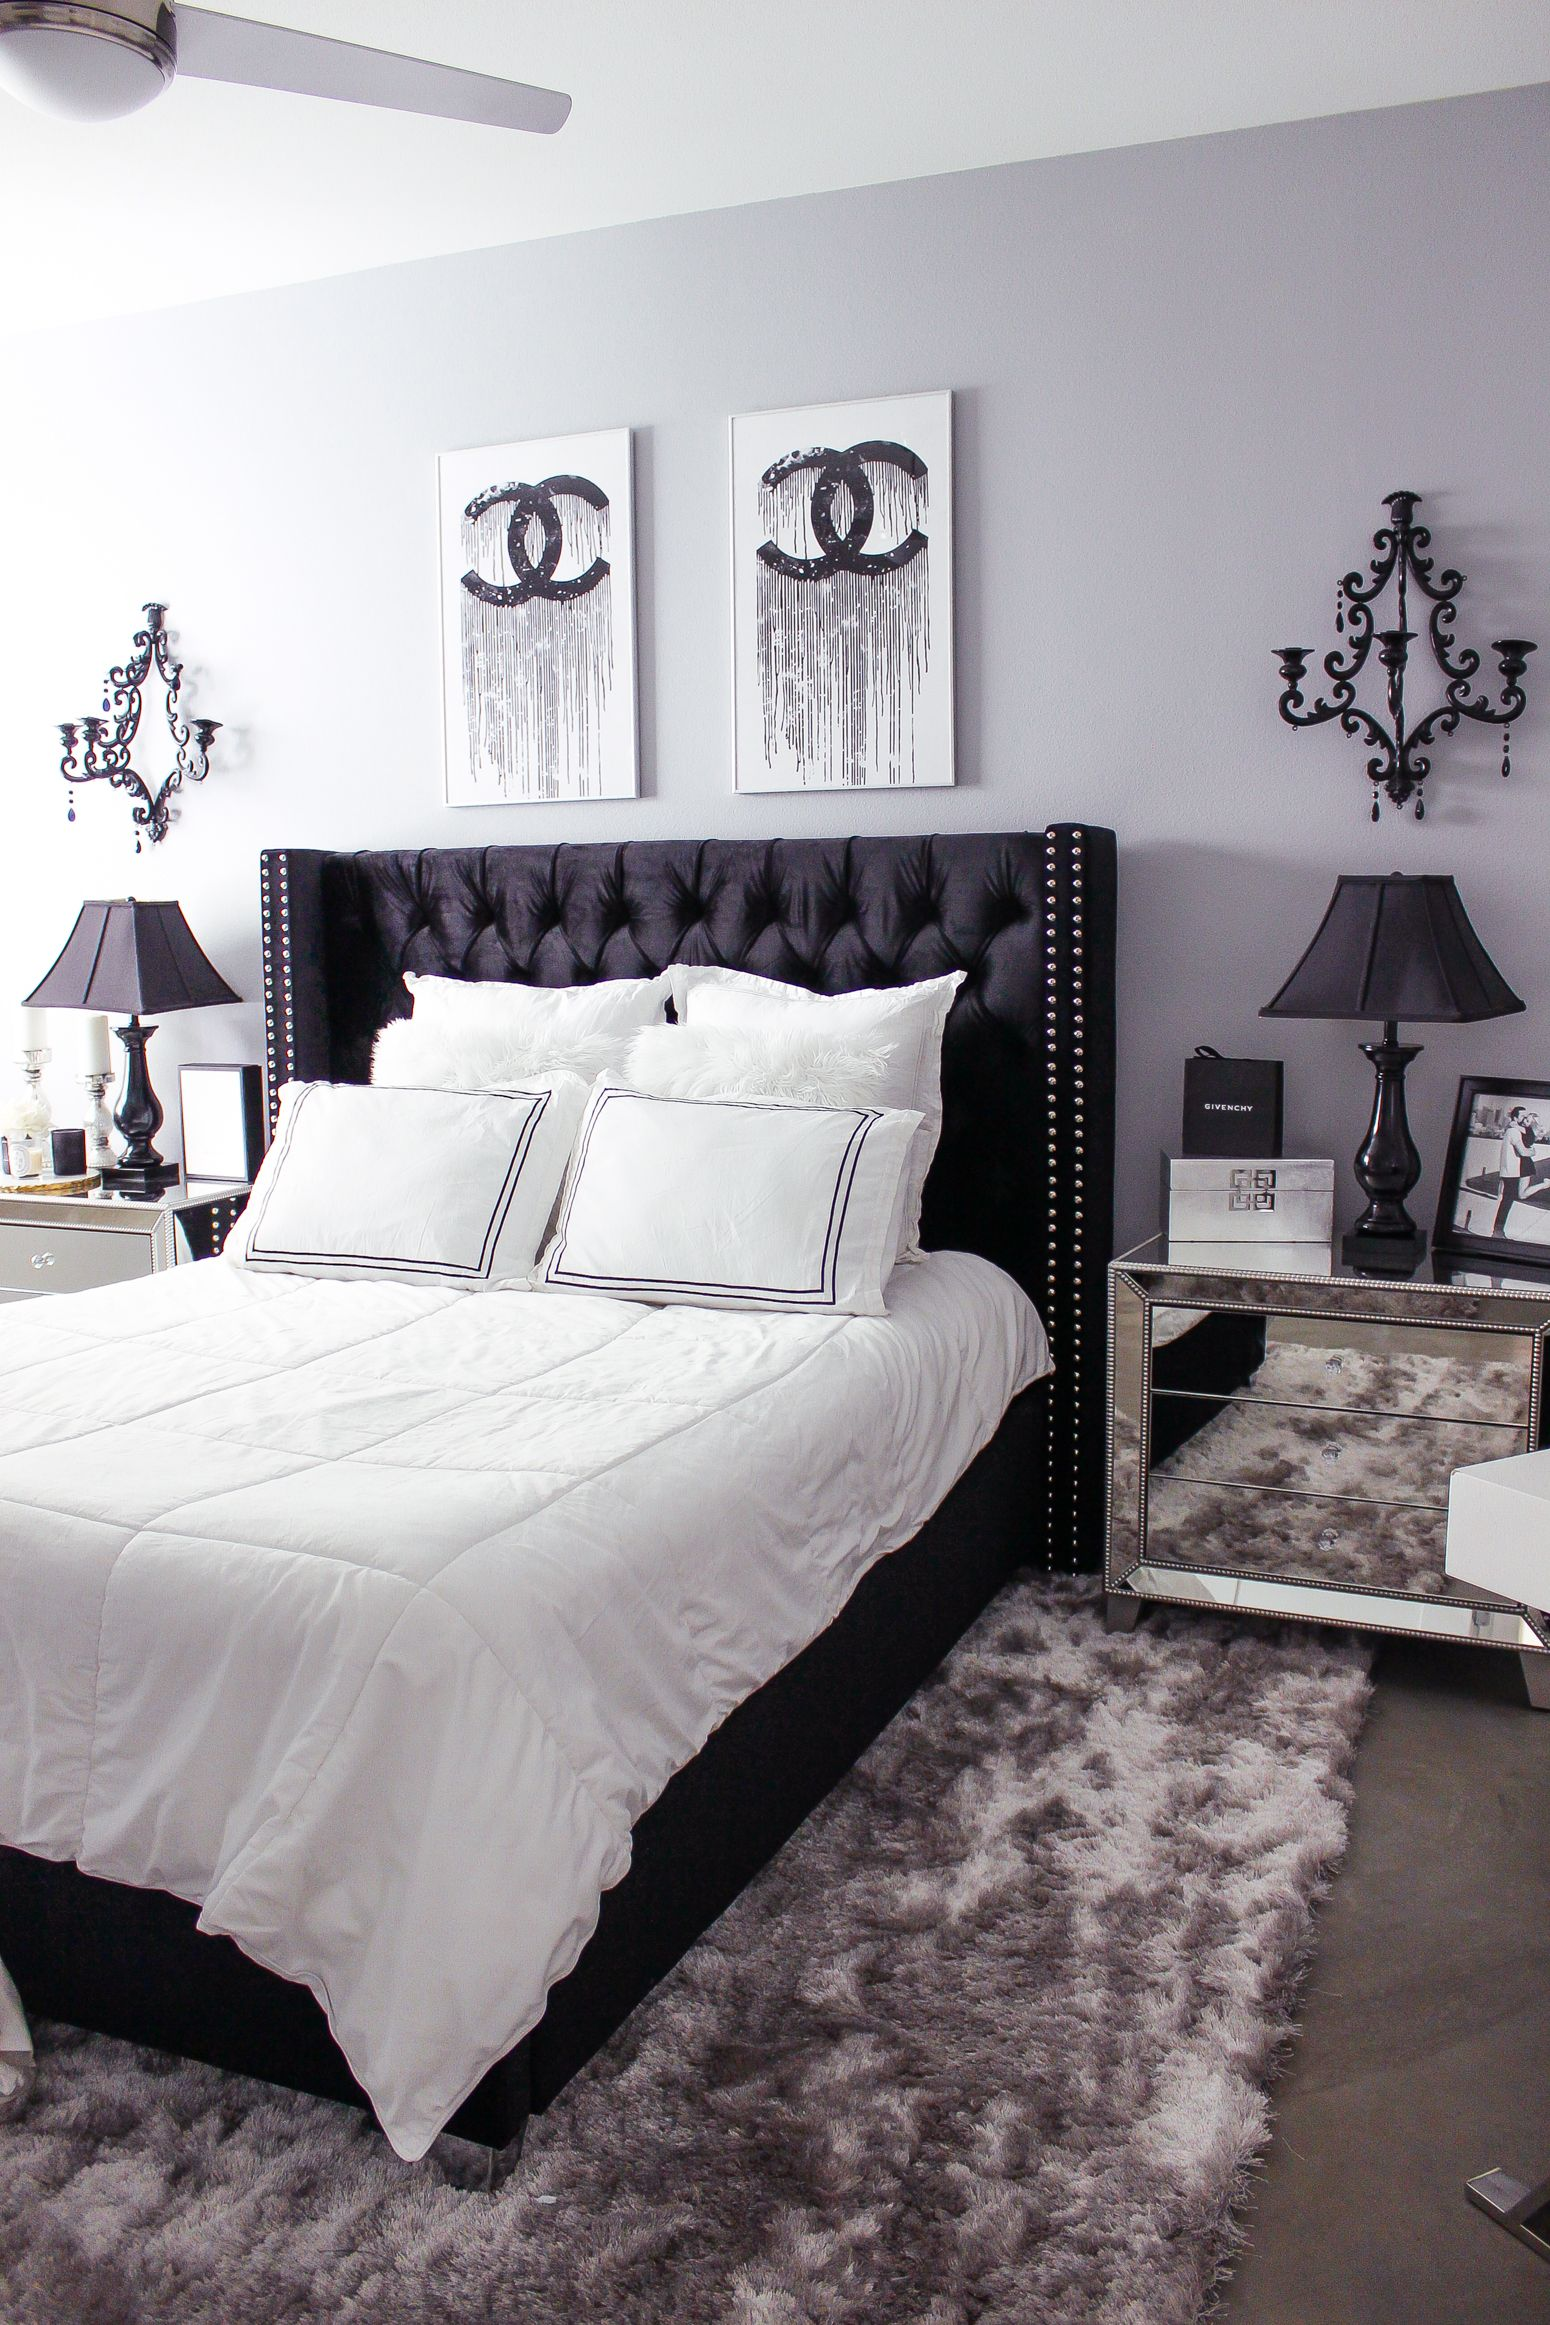 Black white bedroom decor reveal home decor ideas - Black white and gray bedroom ideas ...